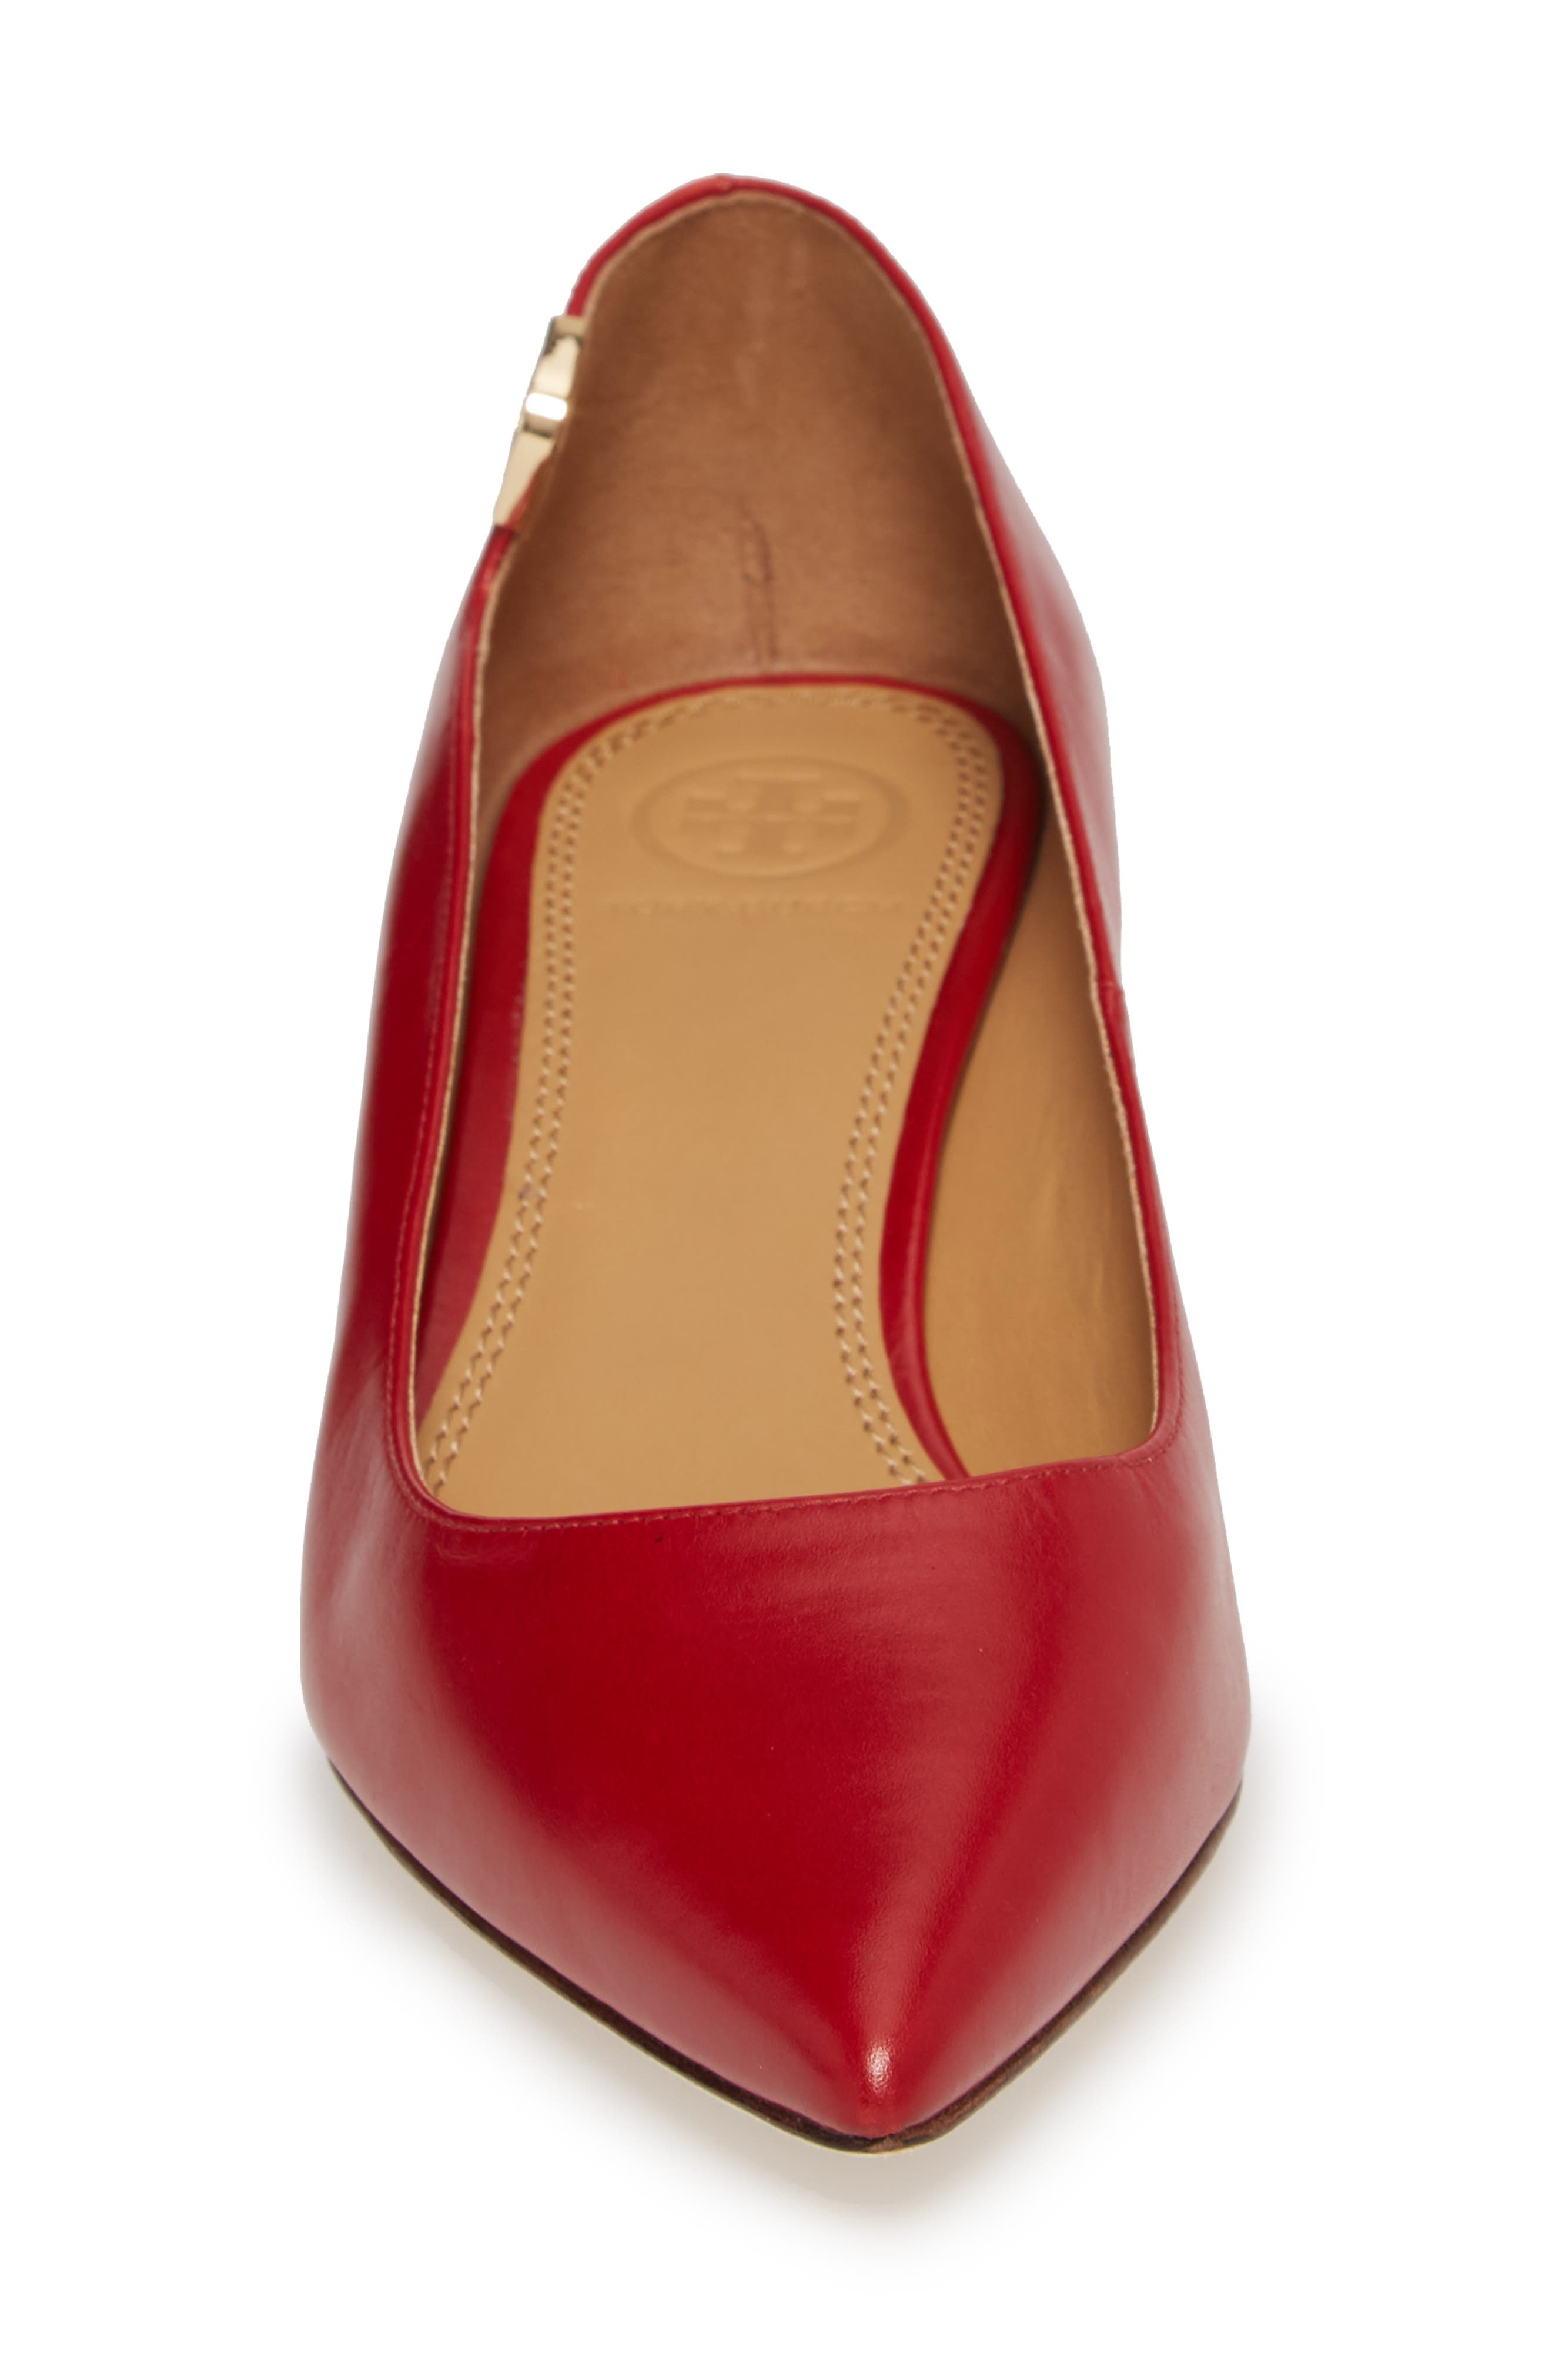 TORY BURCH,                             Elizabeth Pointy Toe Pump,                             Alternate thumbnail 4, color,                             601